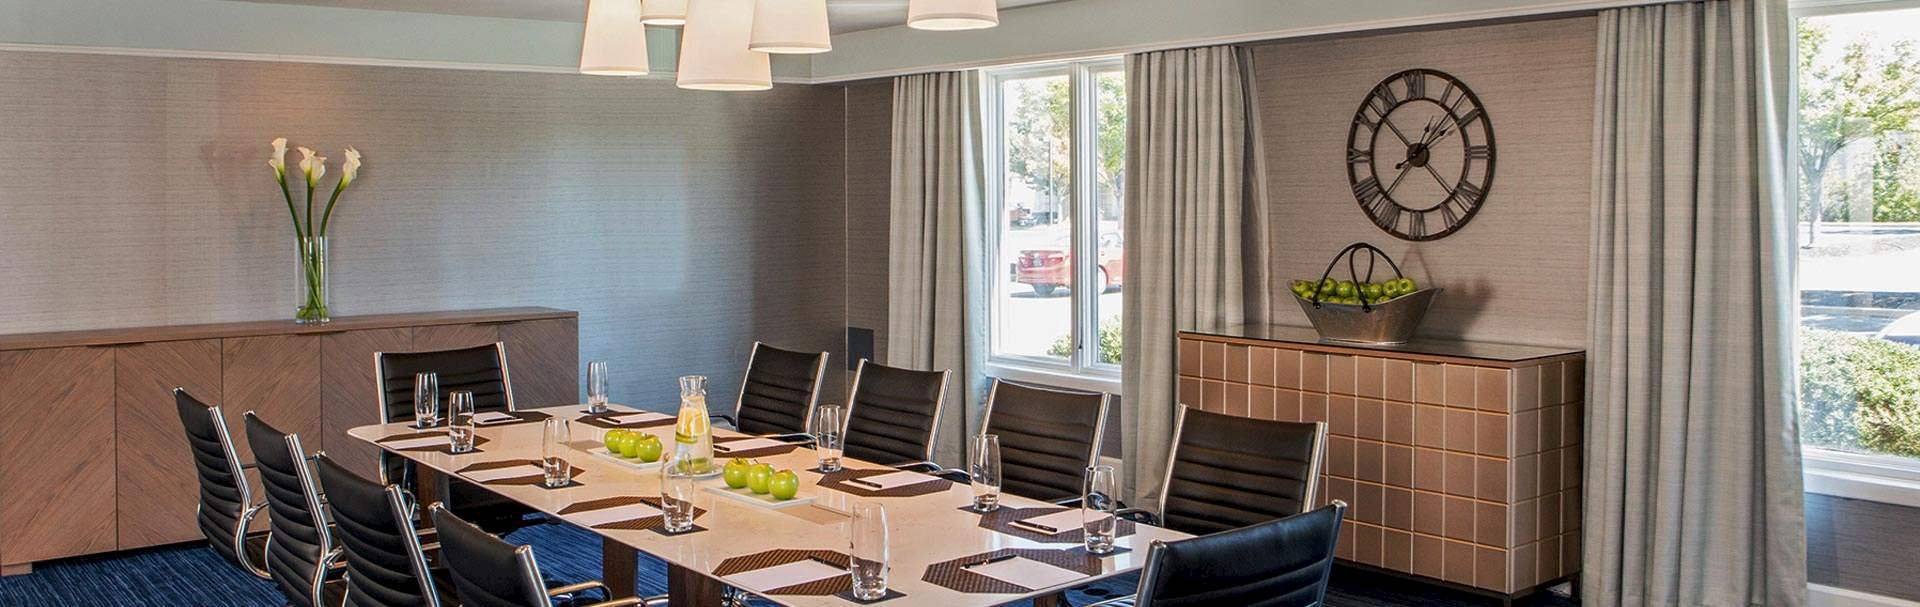 Meetings Events at Hilton Wilmington/Christiana Newark, Delaware